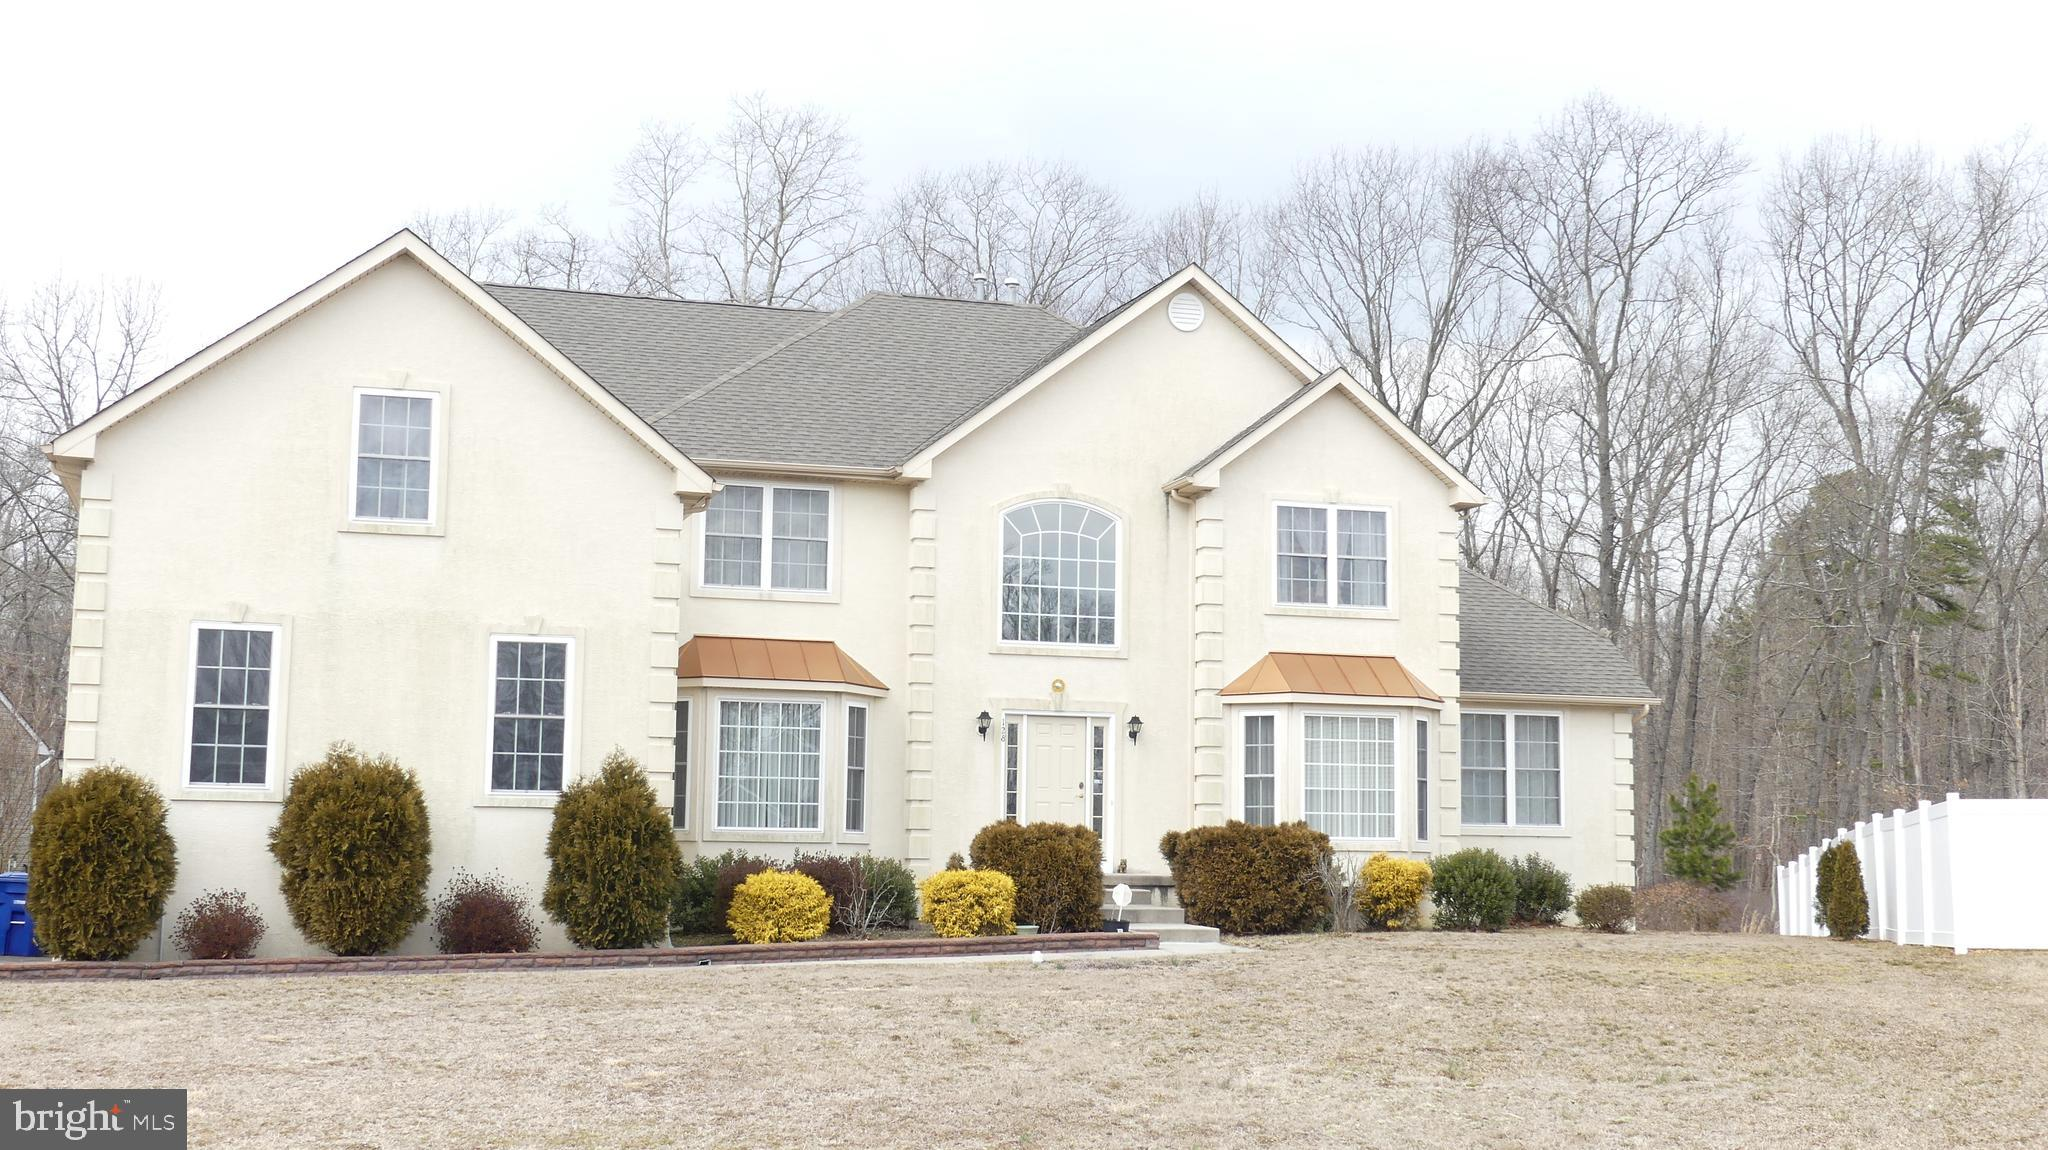 128 WHITE TAIL PASS, FRANKLINVILLE, NJ 08322